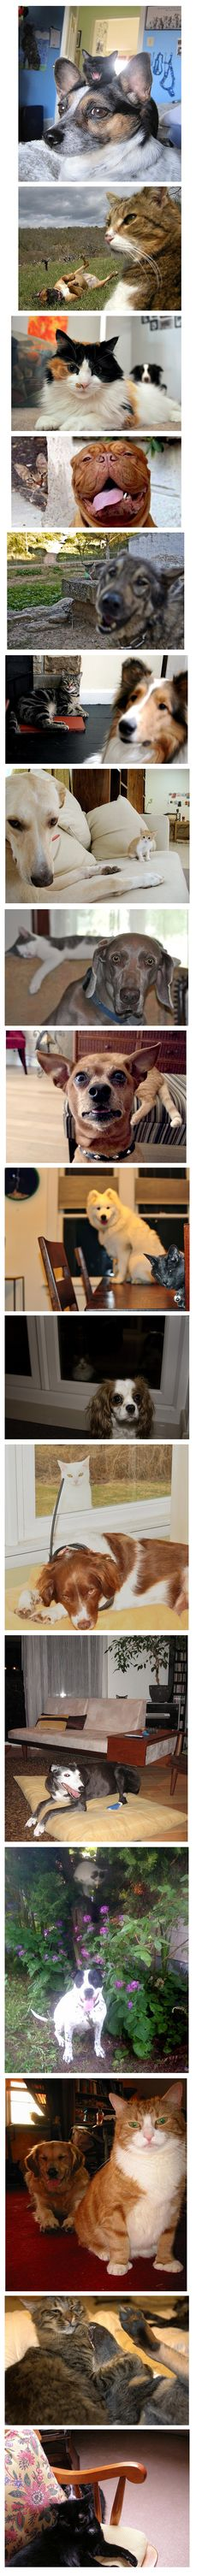 Cats and Dogs Photobombing Each Other